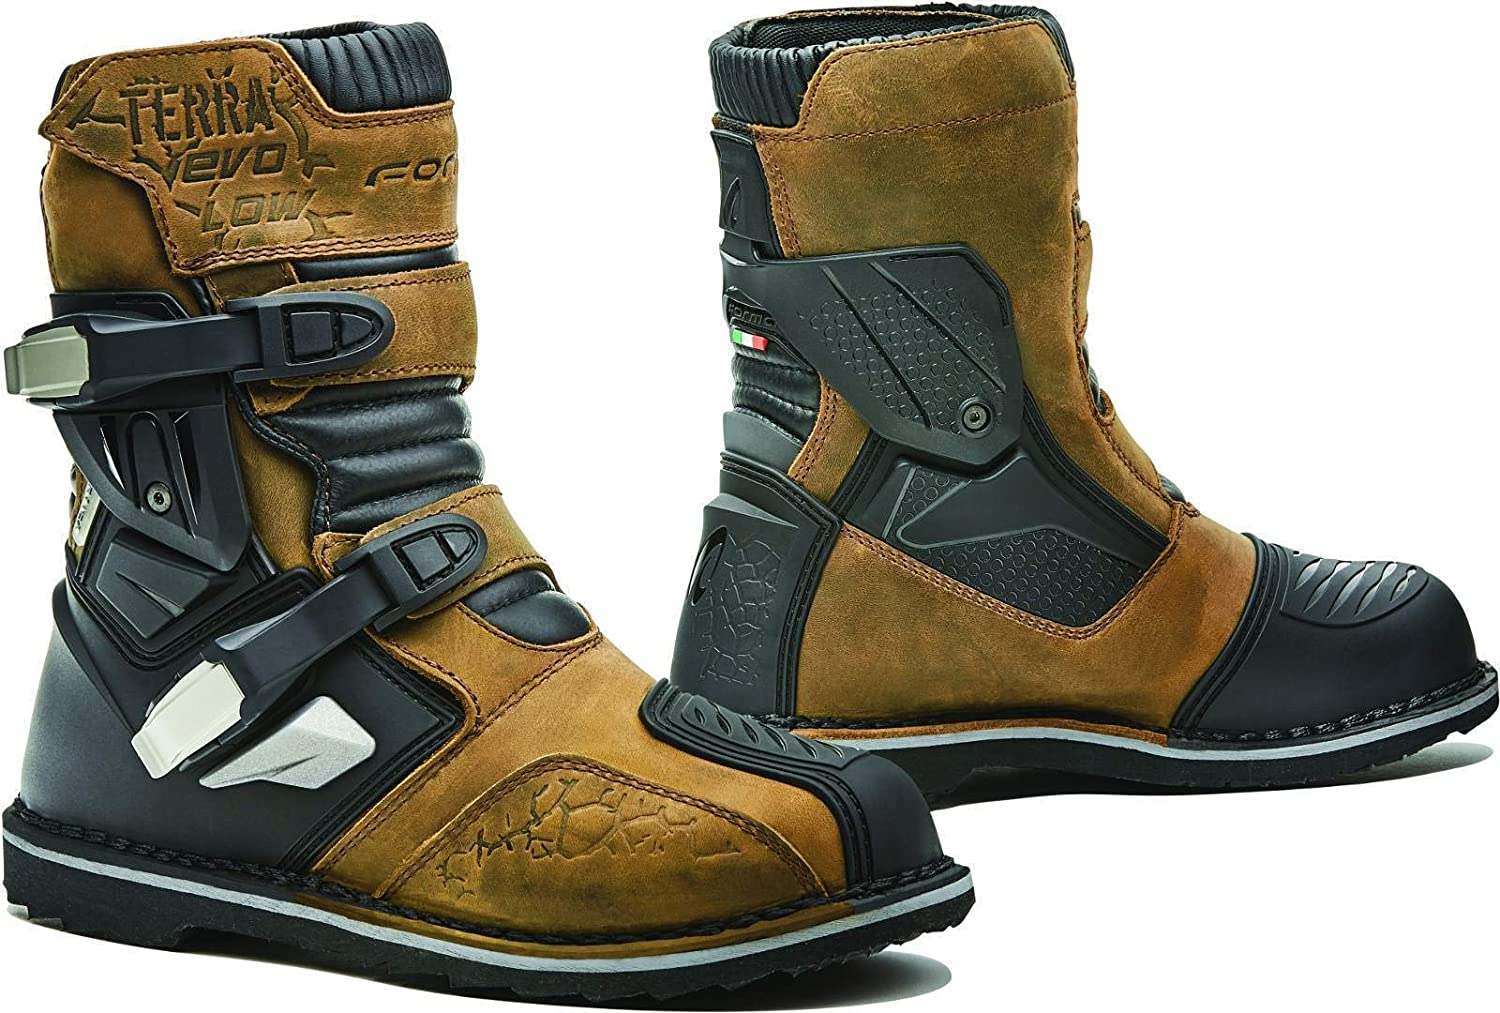 FORMA Terra Evo Low WP CE Approved Motorcycle Boots Brown